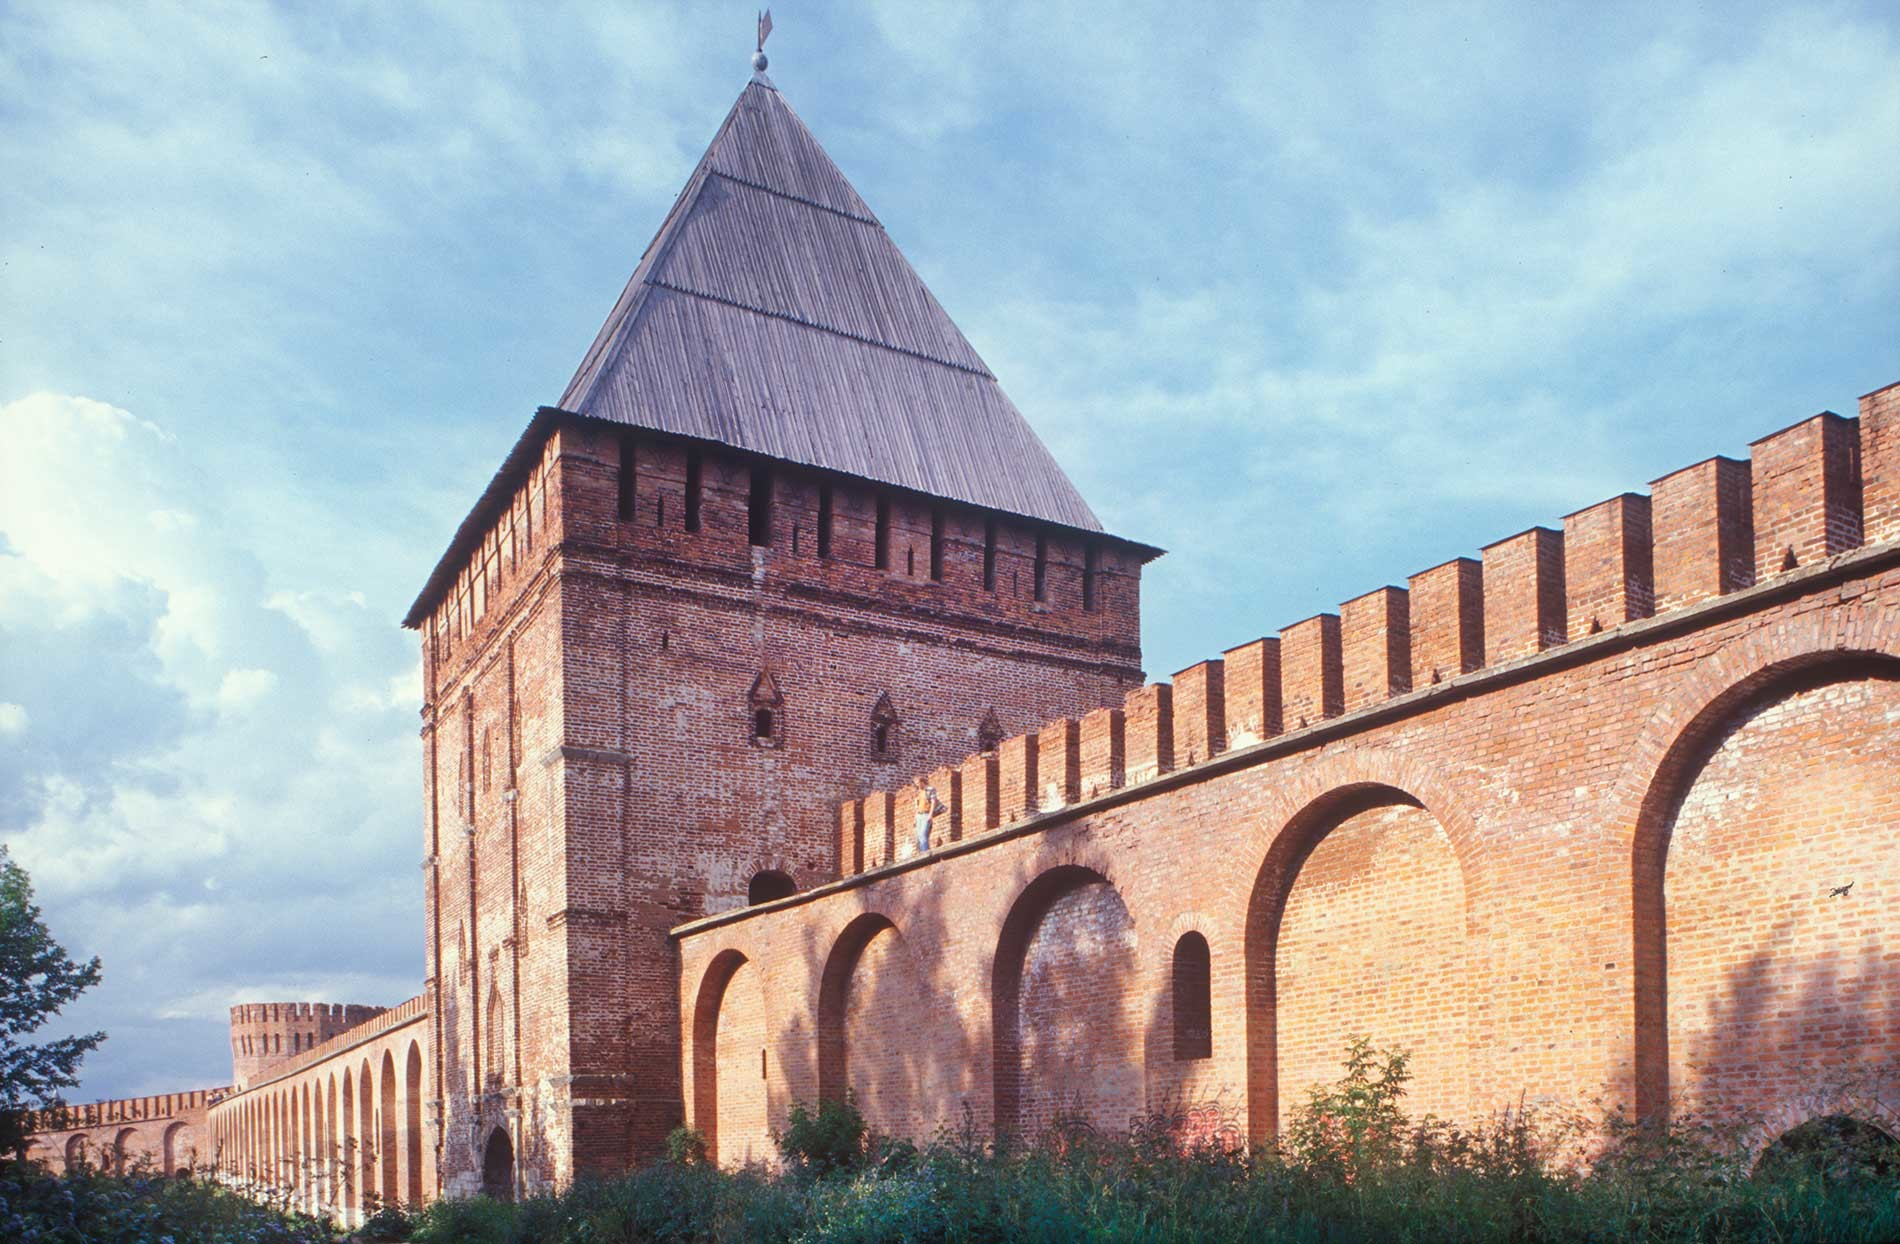 Smolensk citadel. East fortress wall with Avraamy Tower. West façade. Left background: Eagle (Oryol) Tower. July 15, 2006